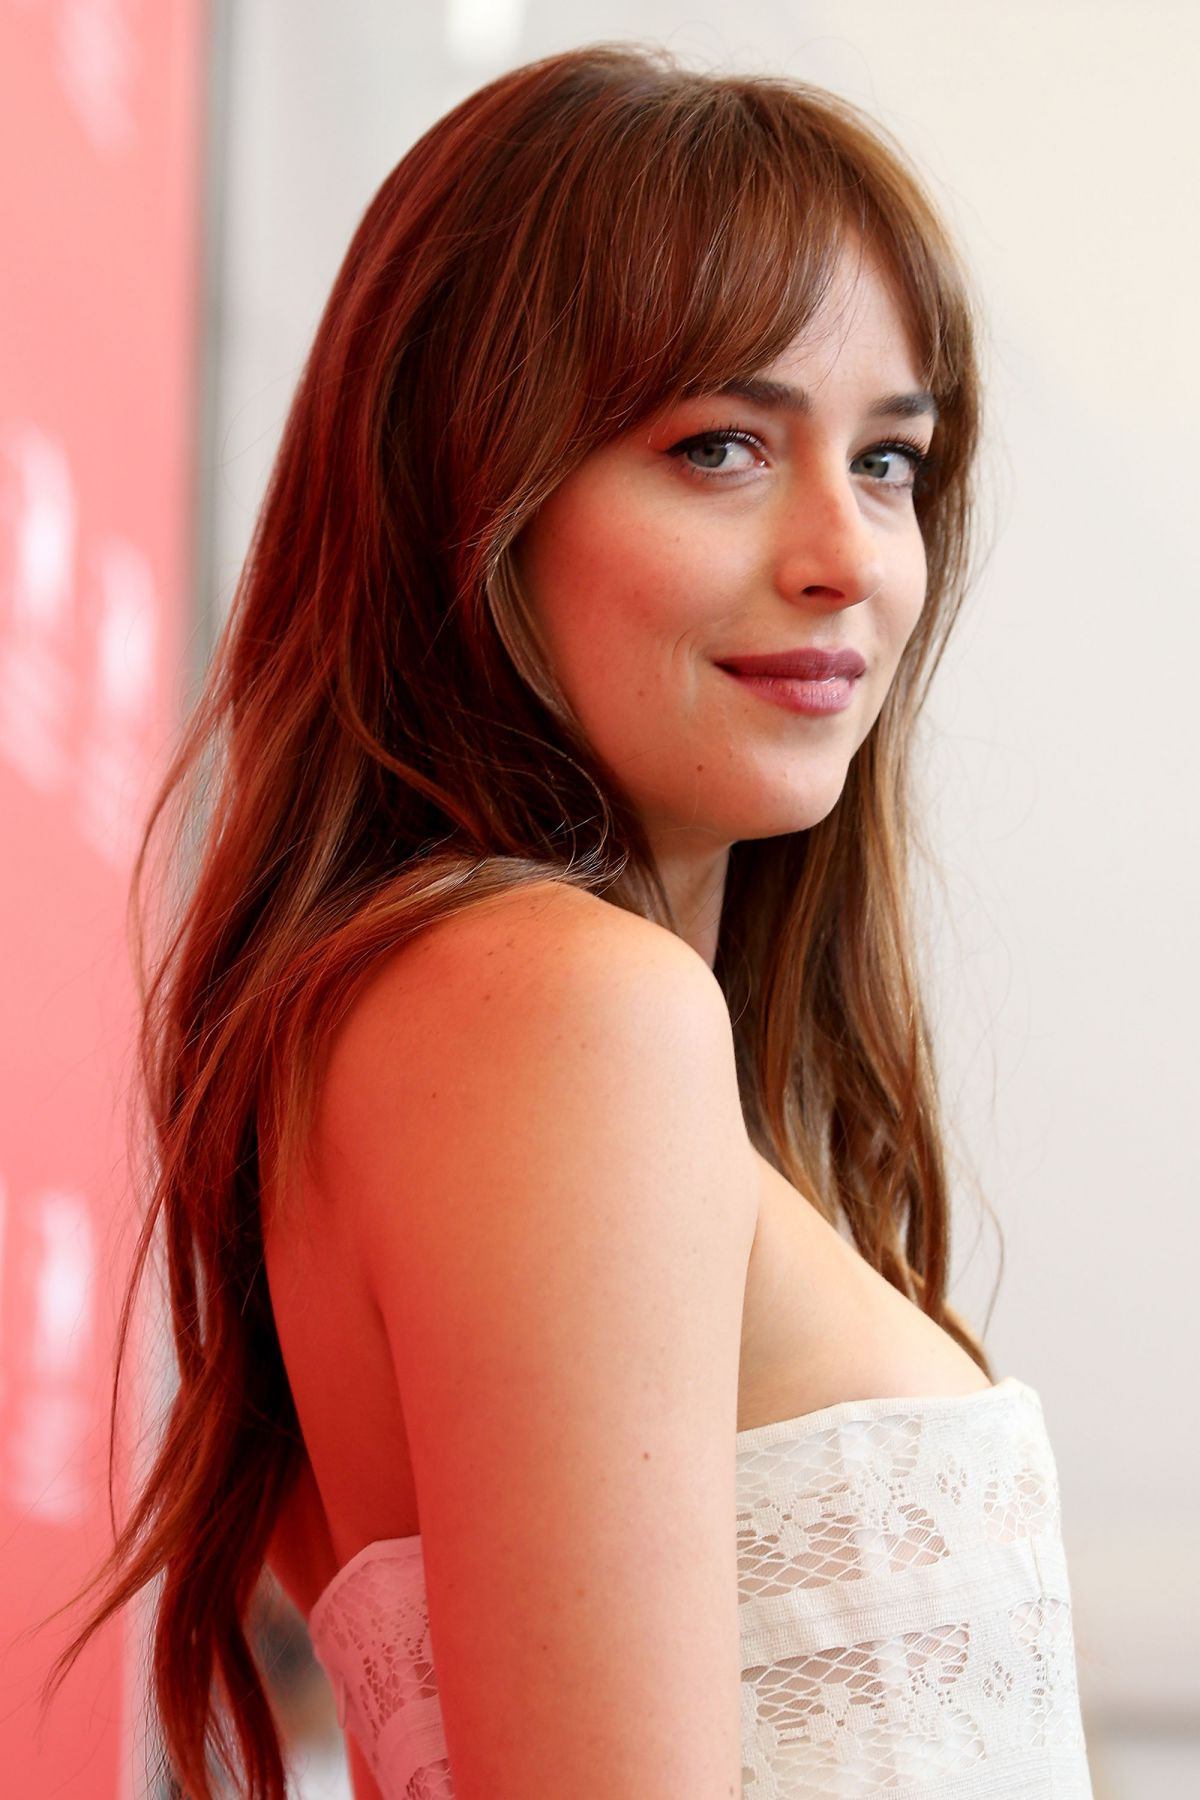 Types Of Bangs Haircut Styles That Are Trendy For 2019 With Regard To Latest Short Blonde Side Bangs Hairstyles (View 15 of 20)